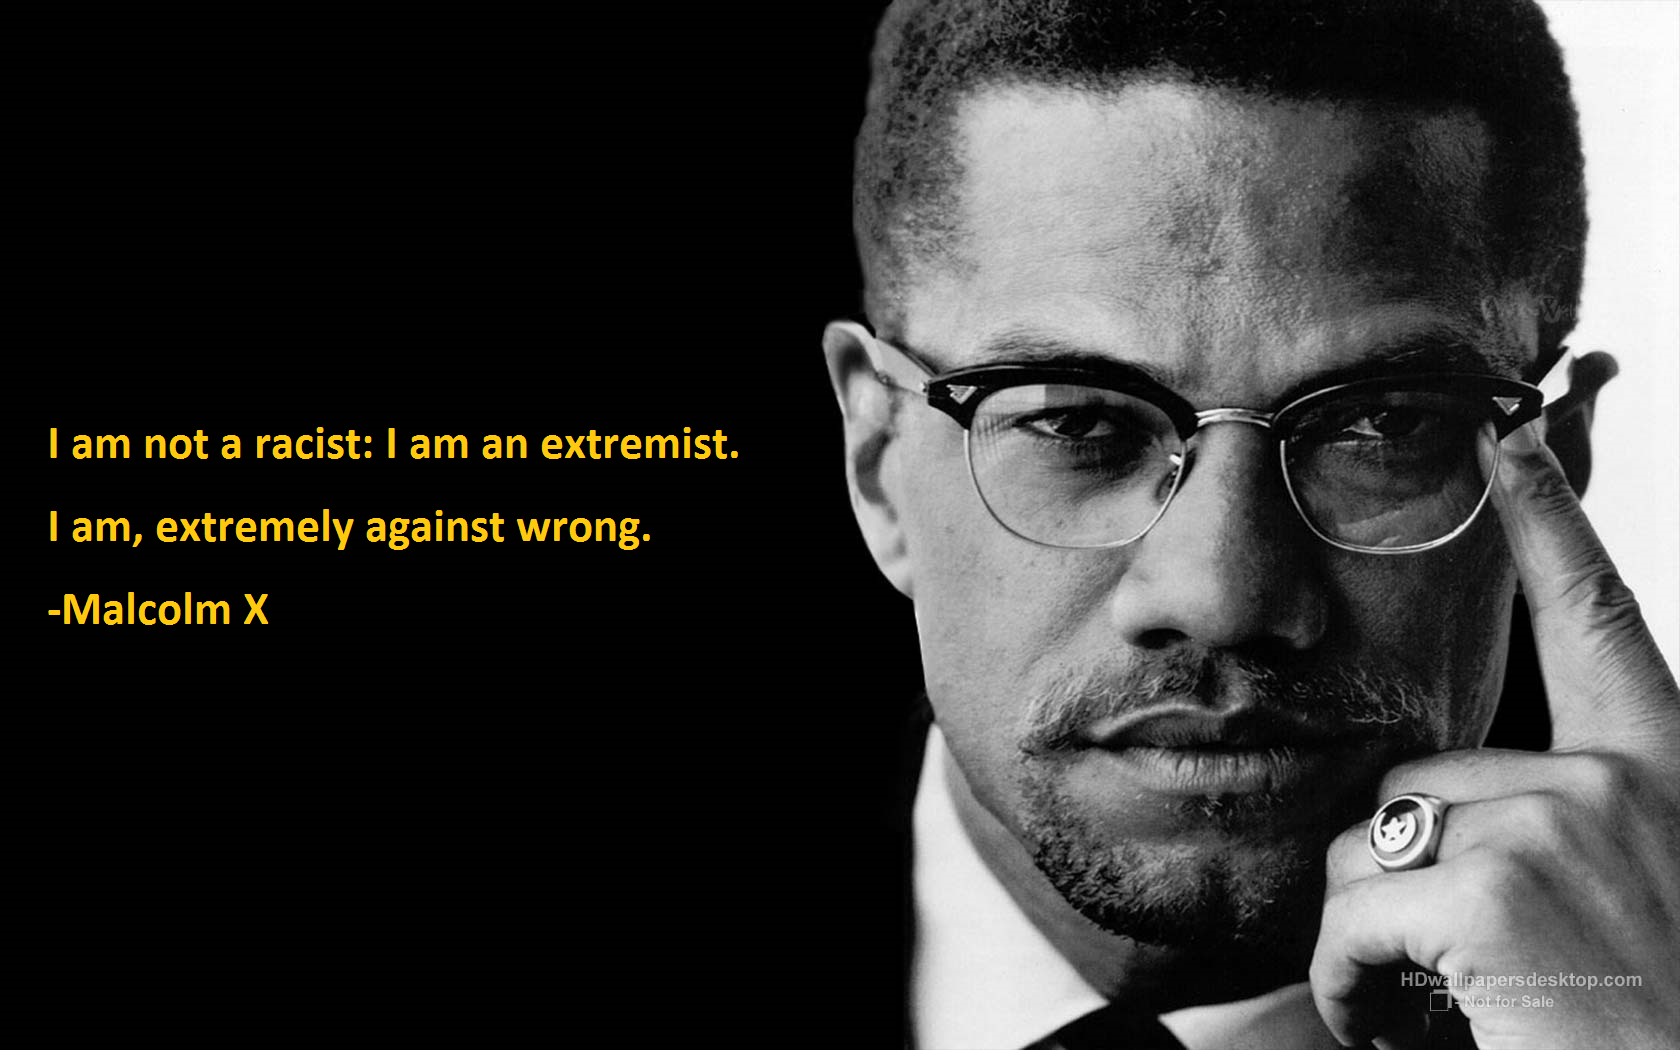 Malcolm X Quote From His Diary